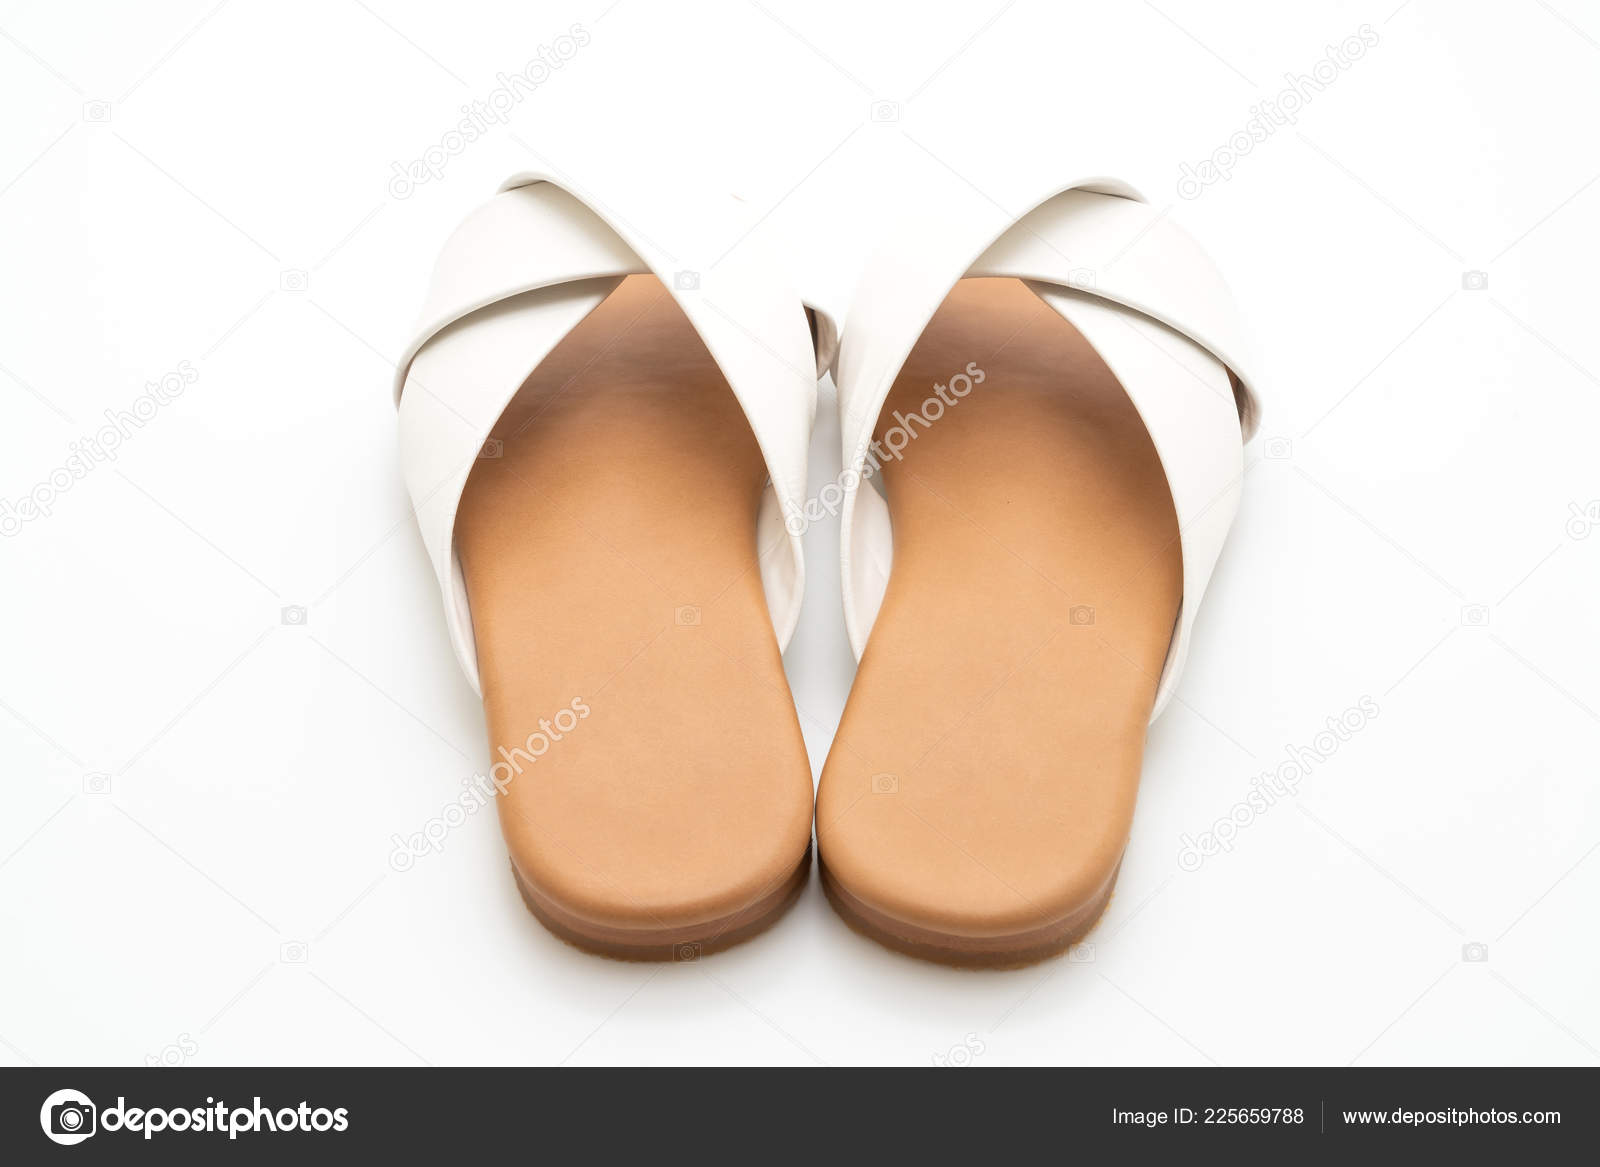 85d601ebd Beautiful fashion female and woman leather sandals isolated on white  background– stock image